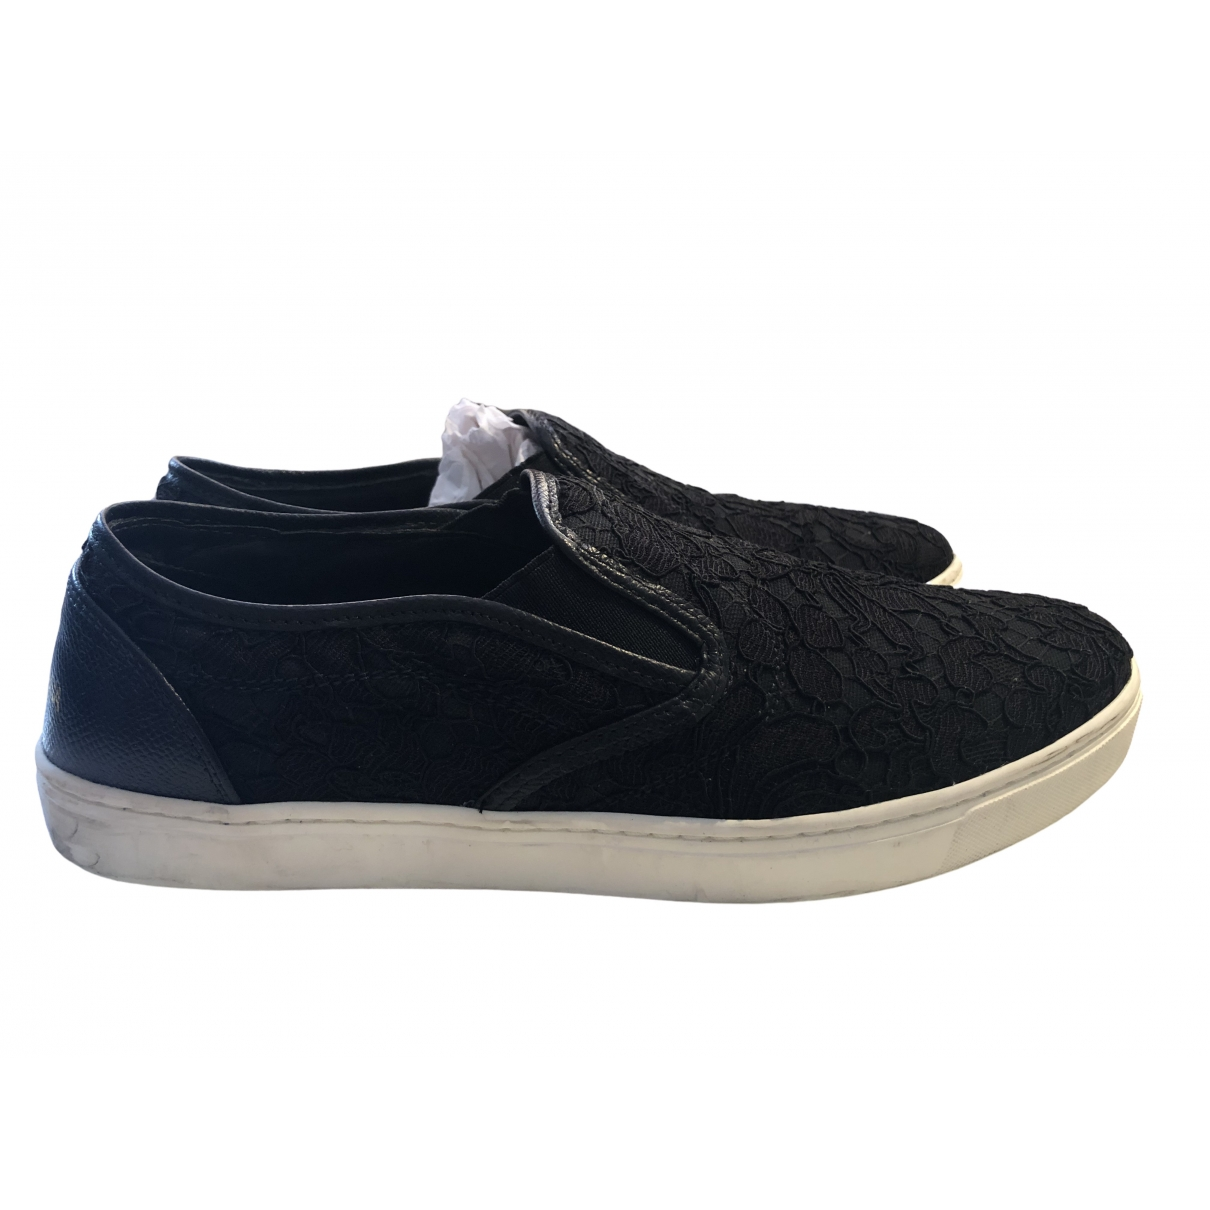 Dolce & Gabbana \N Black Cloth Trainers for Women 40 IT